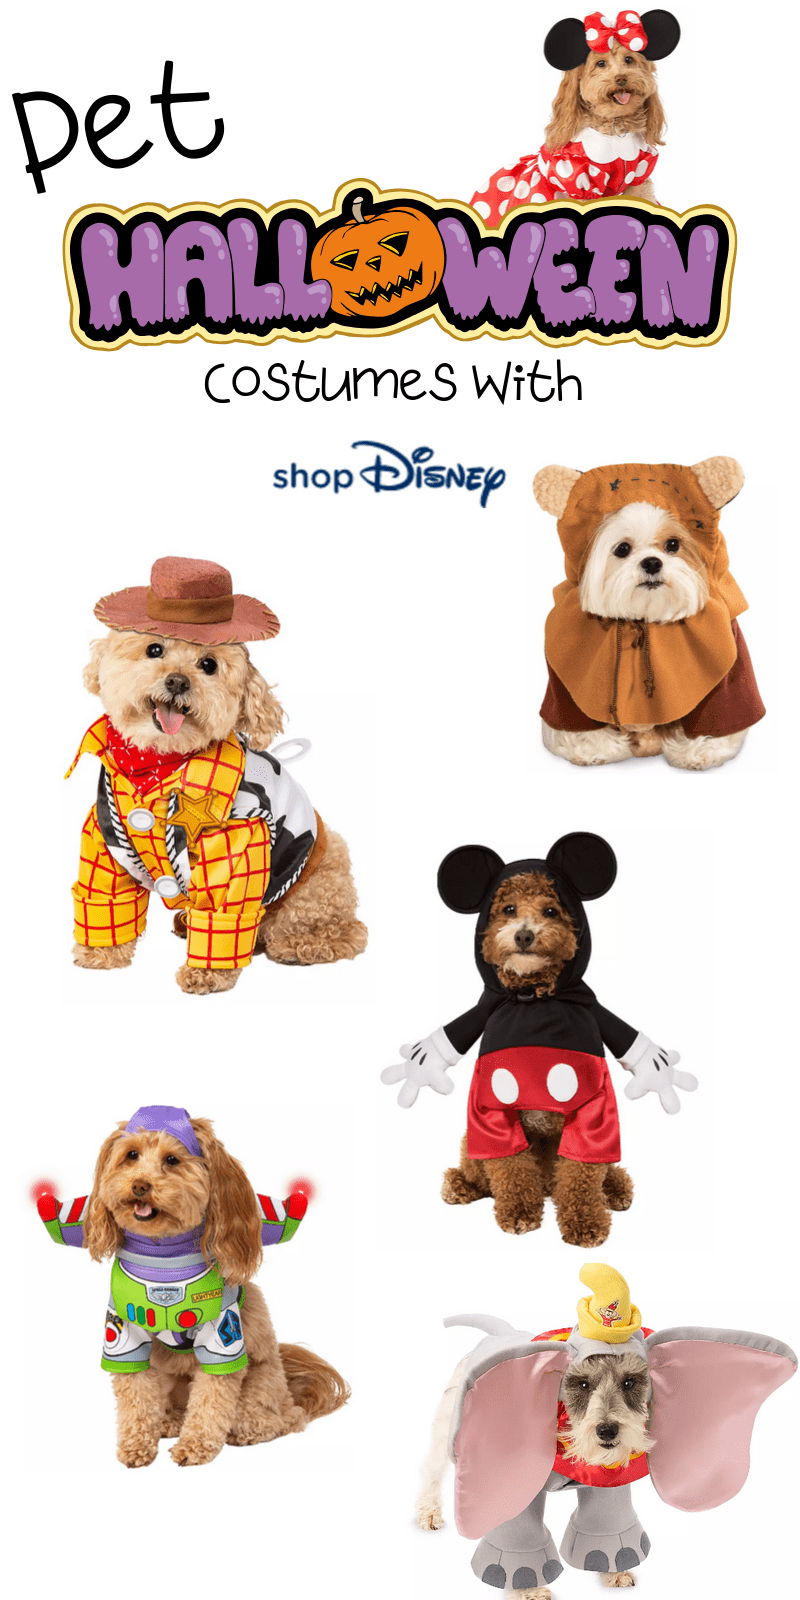 Here are the best in Disney Halloween Costumes for Pets. This fantastic post rounds up the spooky and adorableness of ShopDisney's Halloween Collection for 2019.  #ad @ShopDisney #halloween2019 #disney #disneylove #disneymagic #waltdisney #disneyprincess #mickeymouse #disneyphoto #disneylife #disneyfan #mickey #disneyaddict #disnerd #starwars #halloween